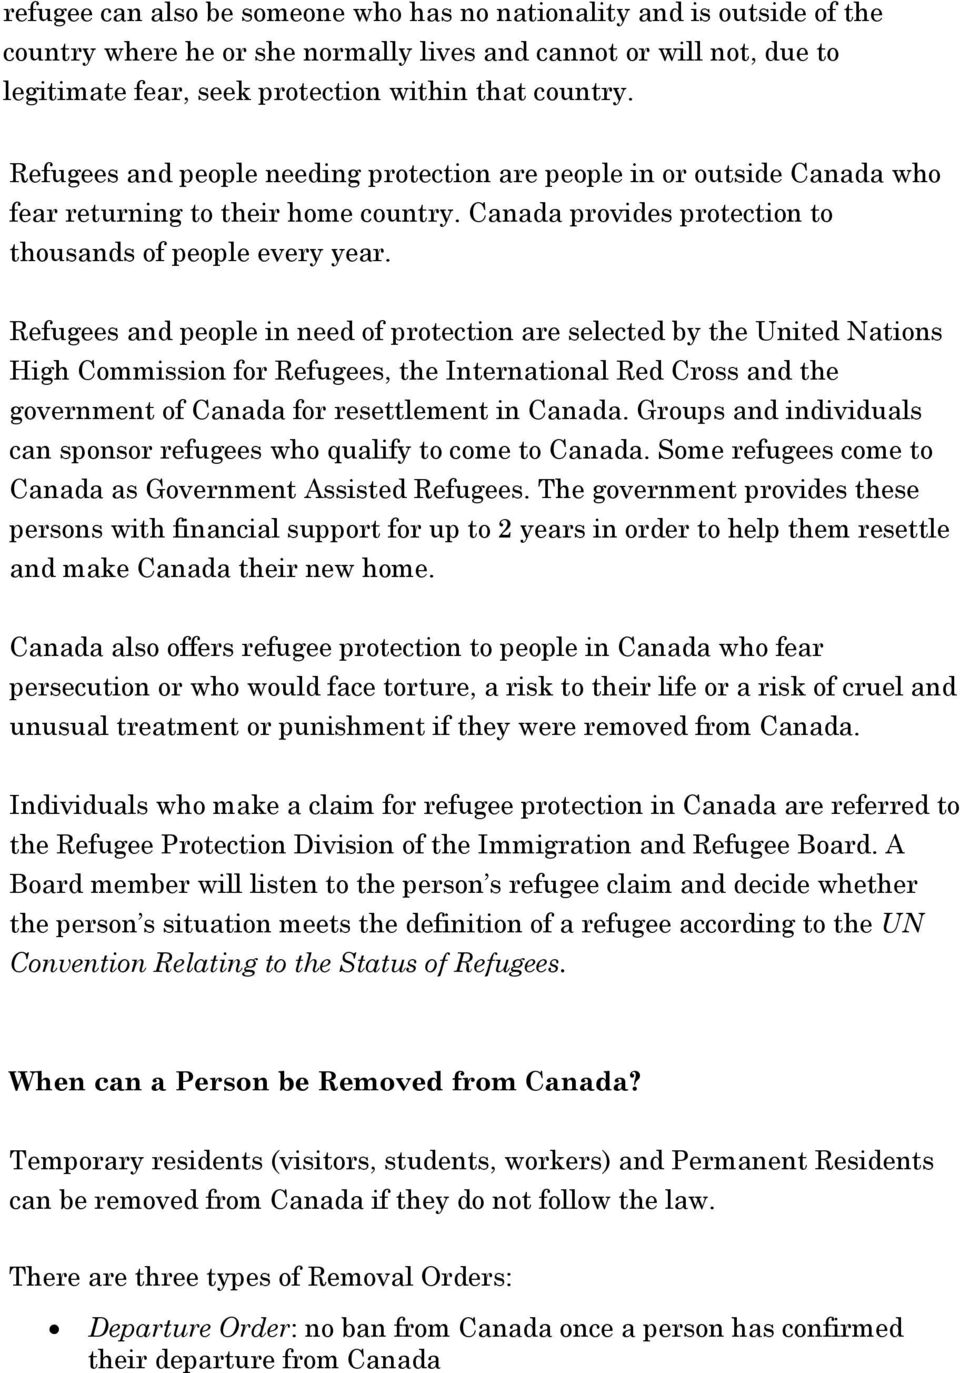 Refugees and people in need of protection are selected by the United Nations High Commission for Refugees, the International Red Cross and the government of Canada for resettlement in Canada.